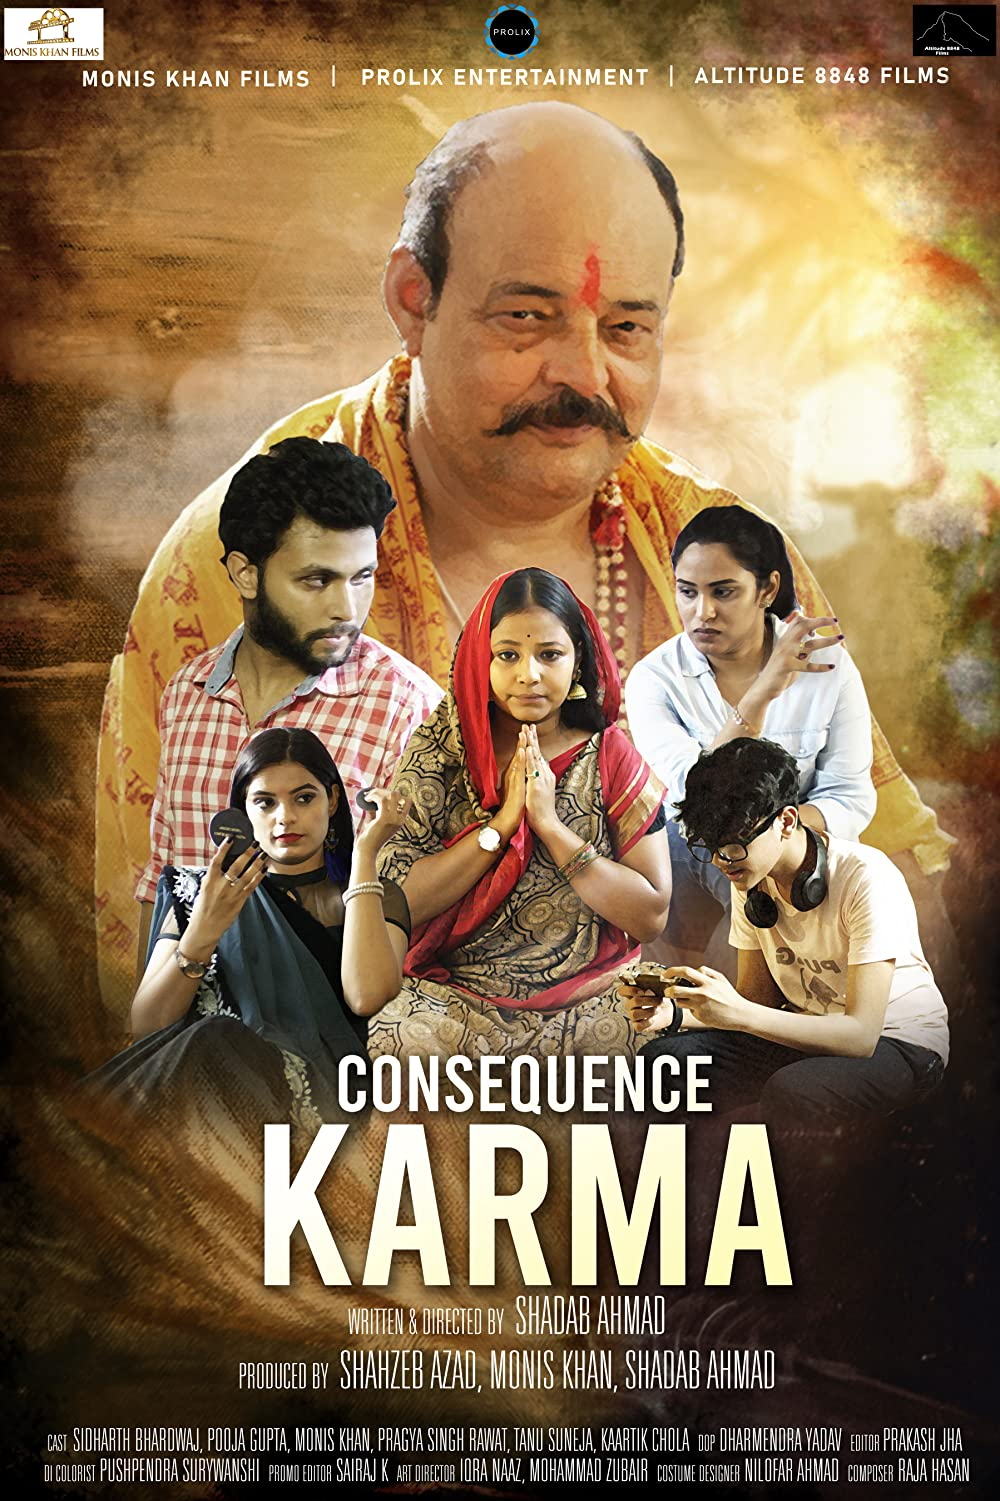 Consequence Karma 2021 Hindi 1080p HDRip 1.4GB Download